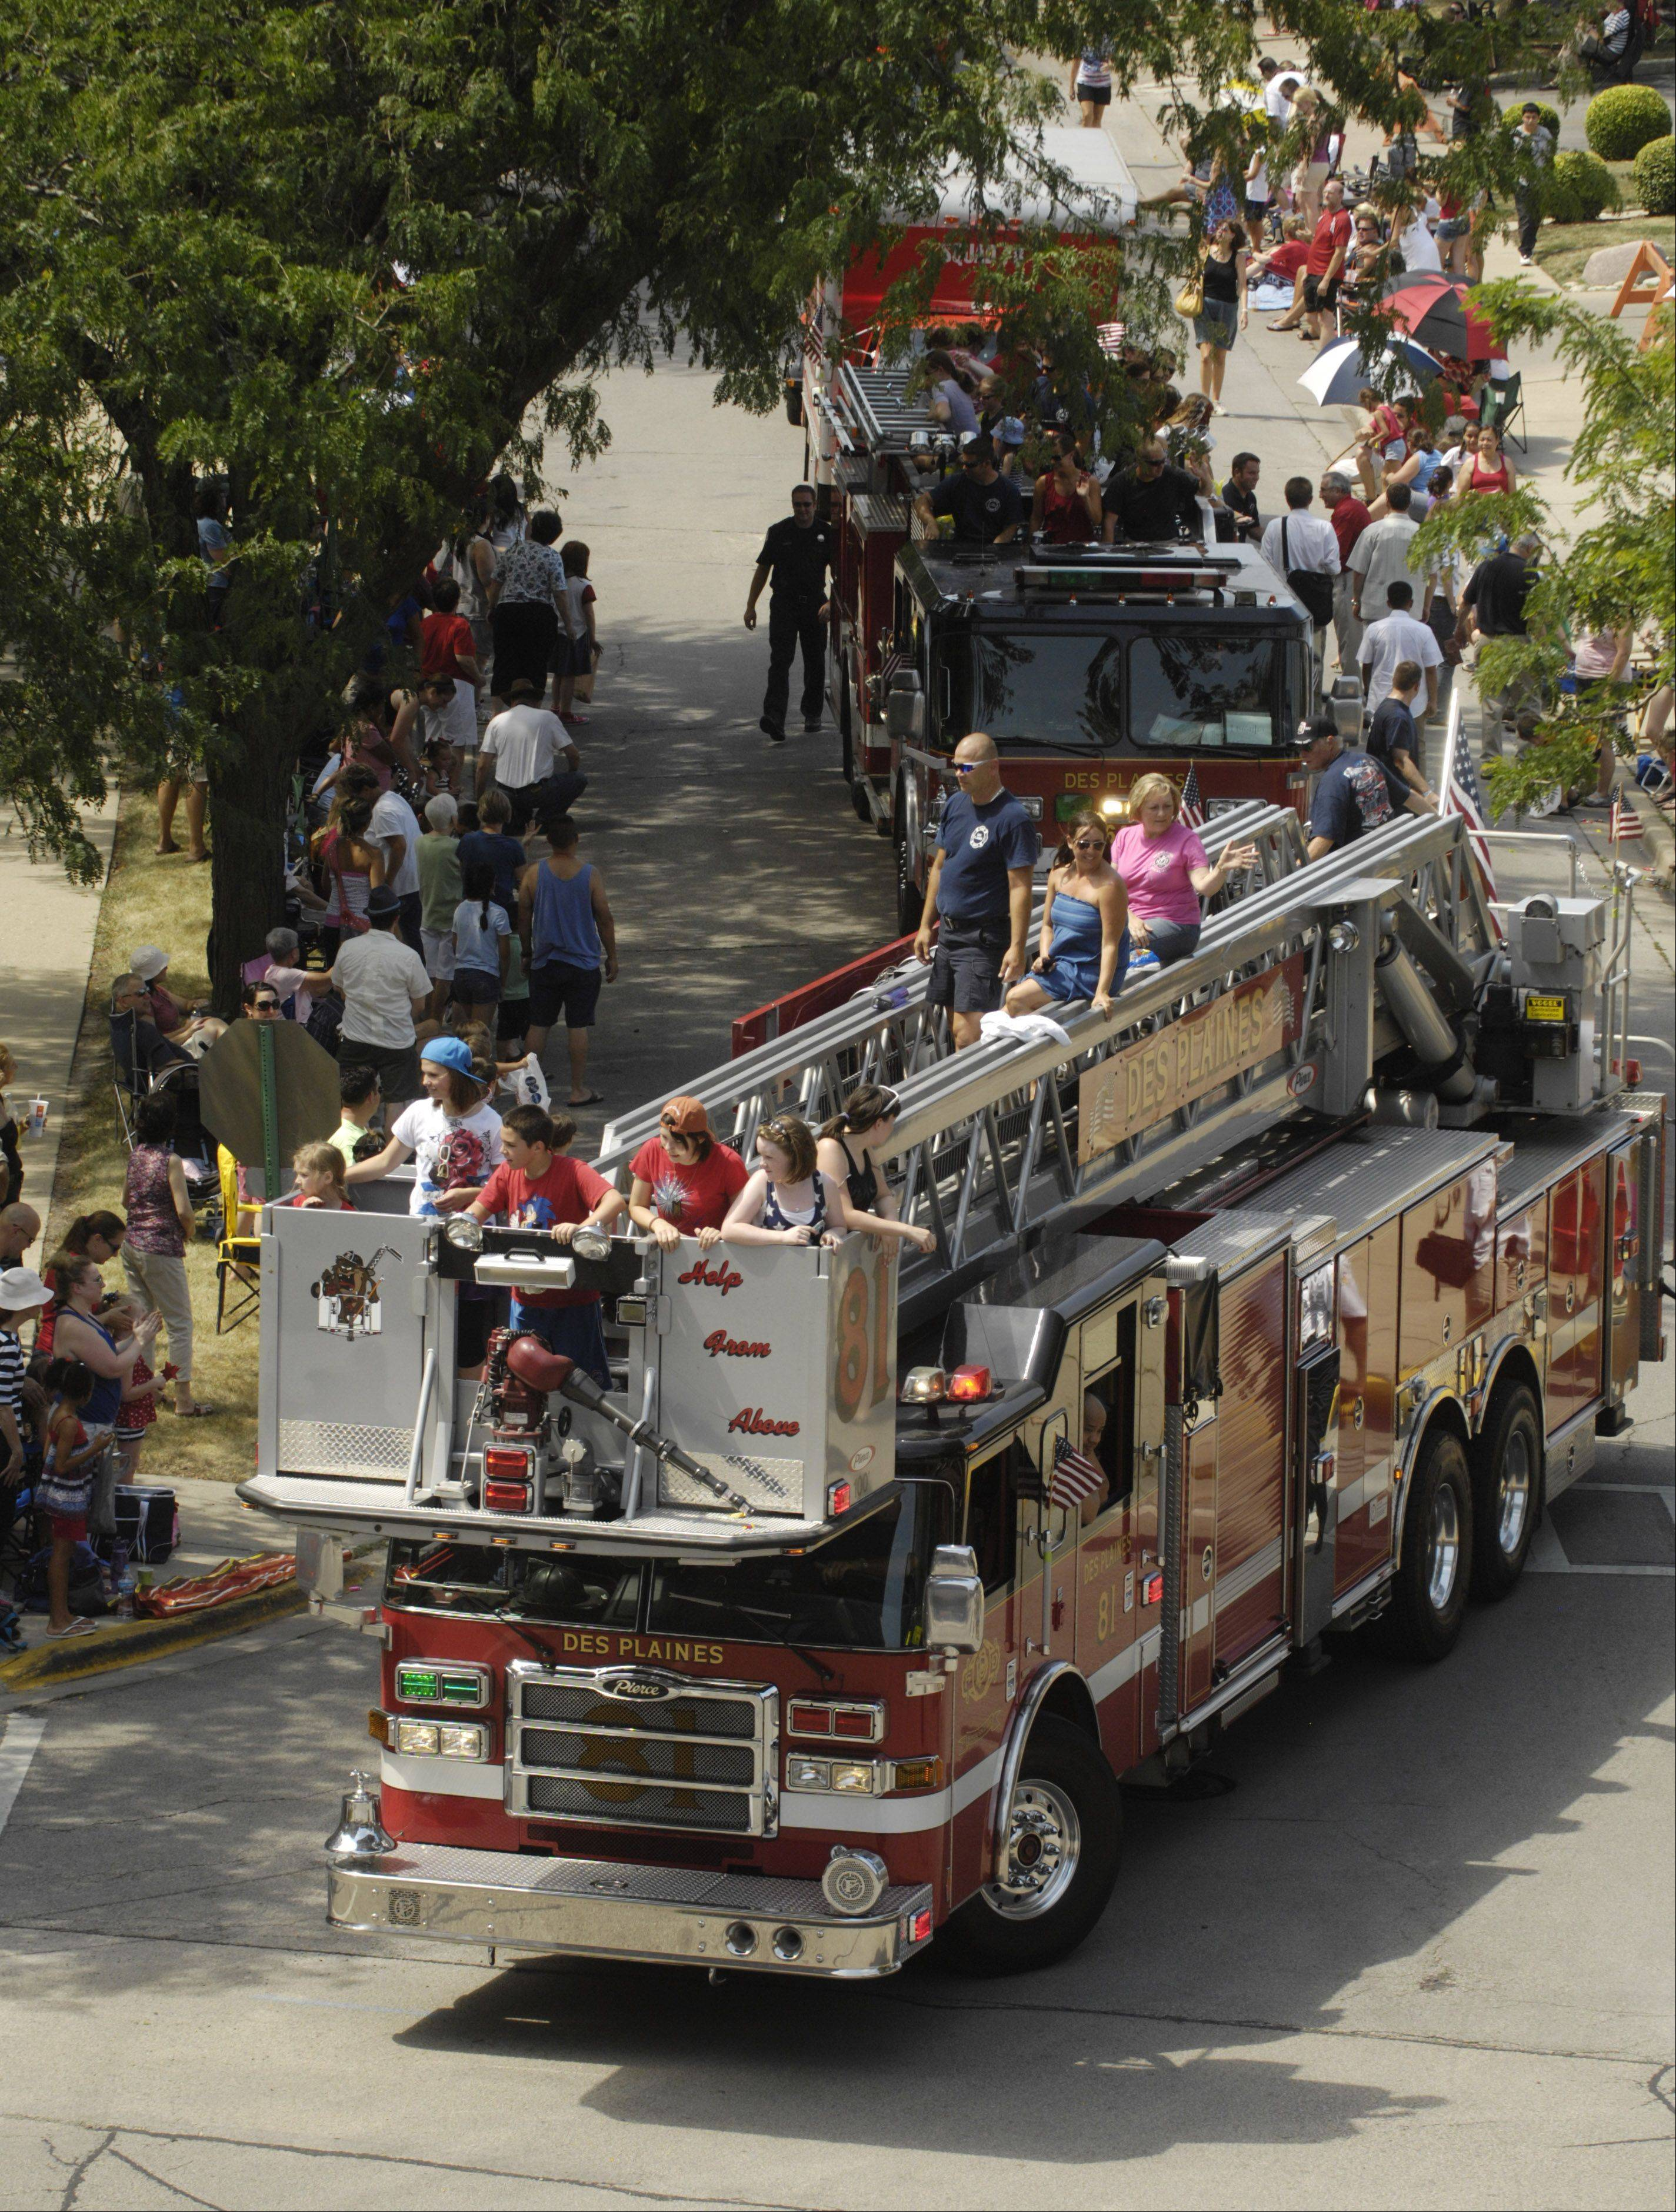 Fire engines pass during the Des Plaines Fourth of July parade Wednesday.